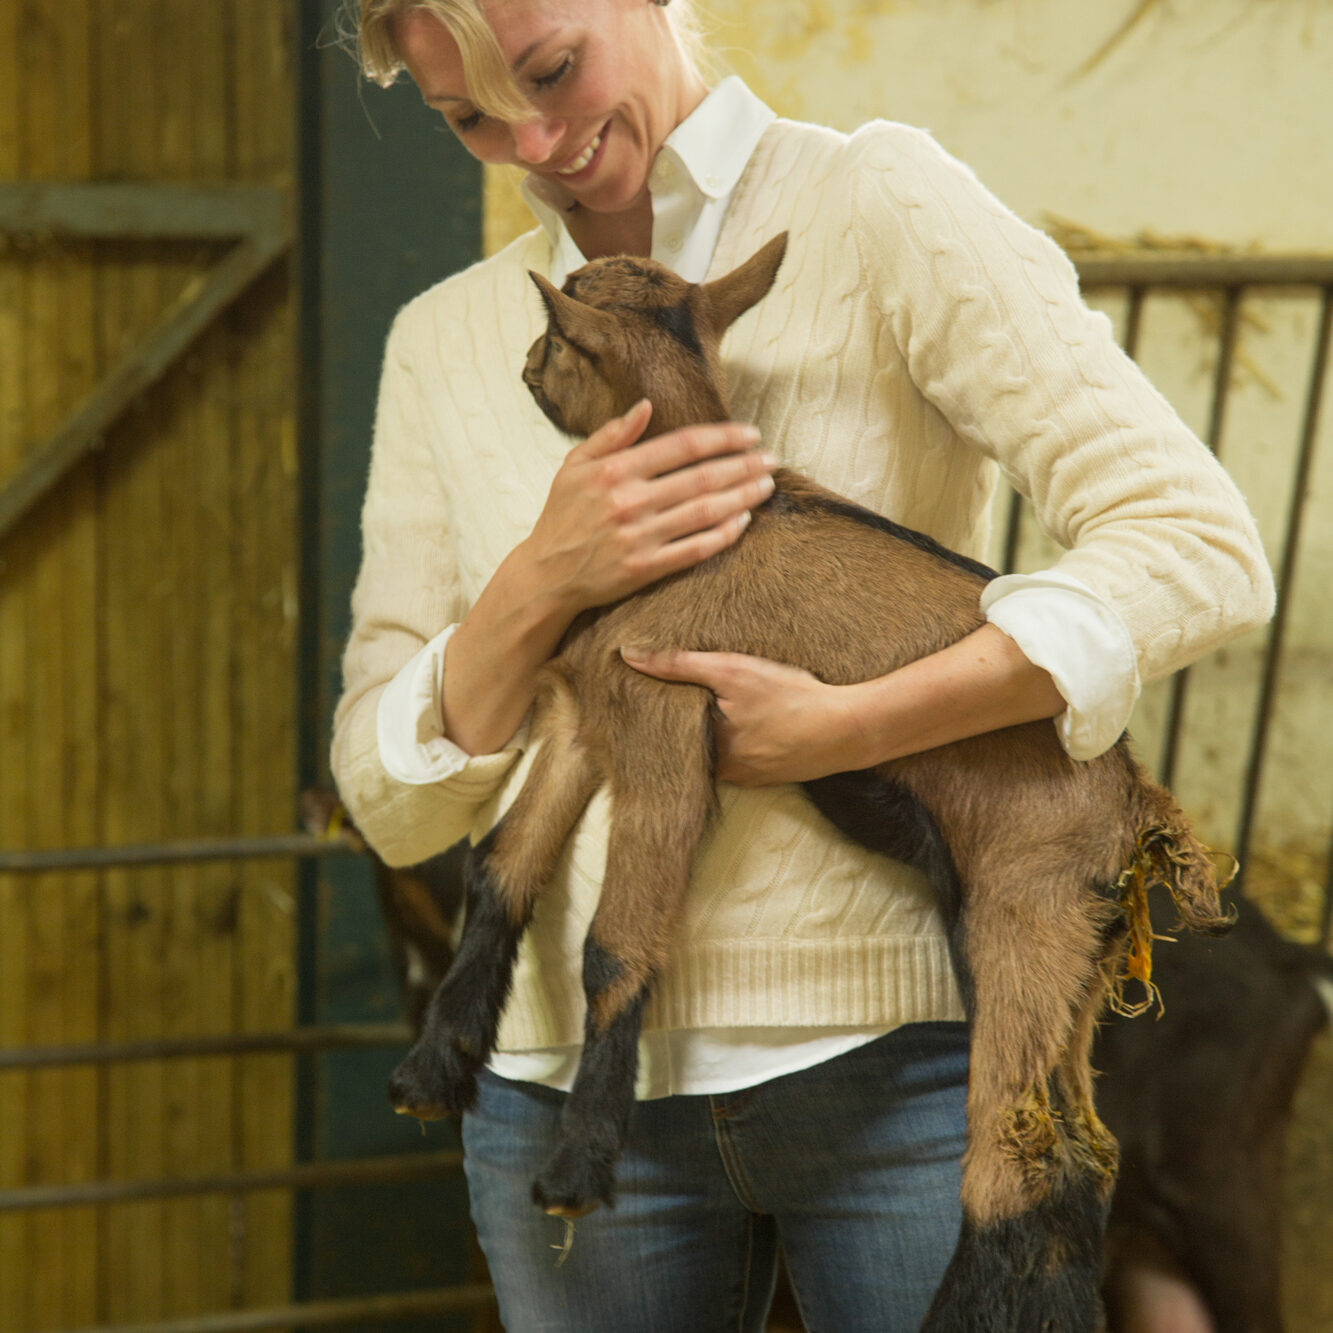 Sarah Sharratt, host of Cooking Channel's UpRooted holds a baby goat in rural France